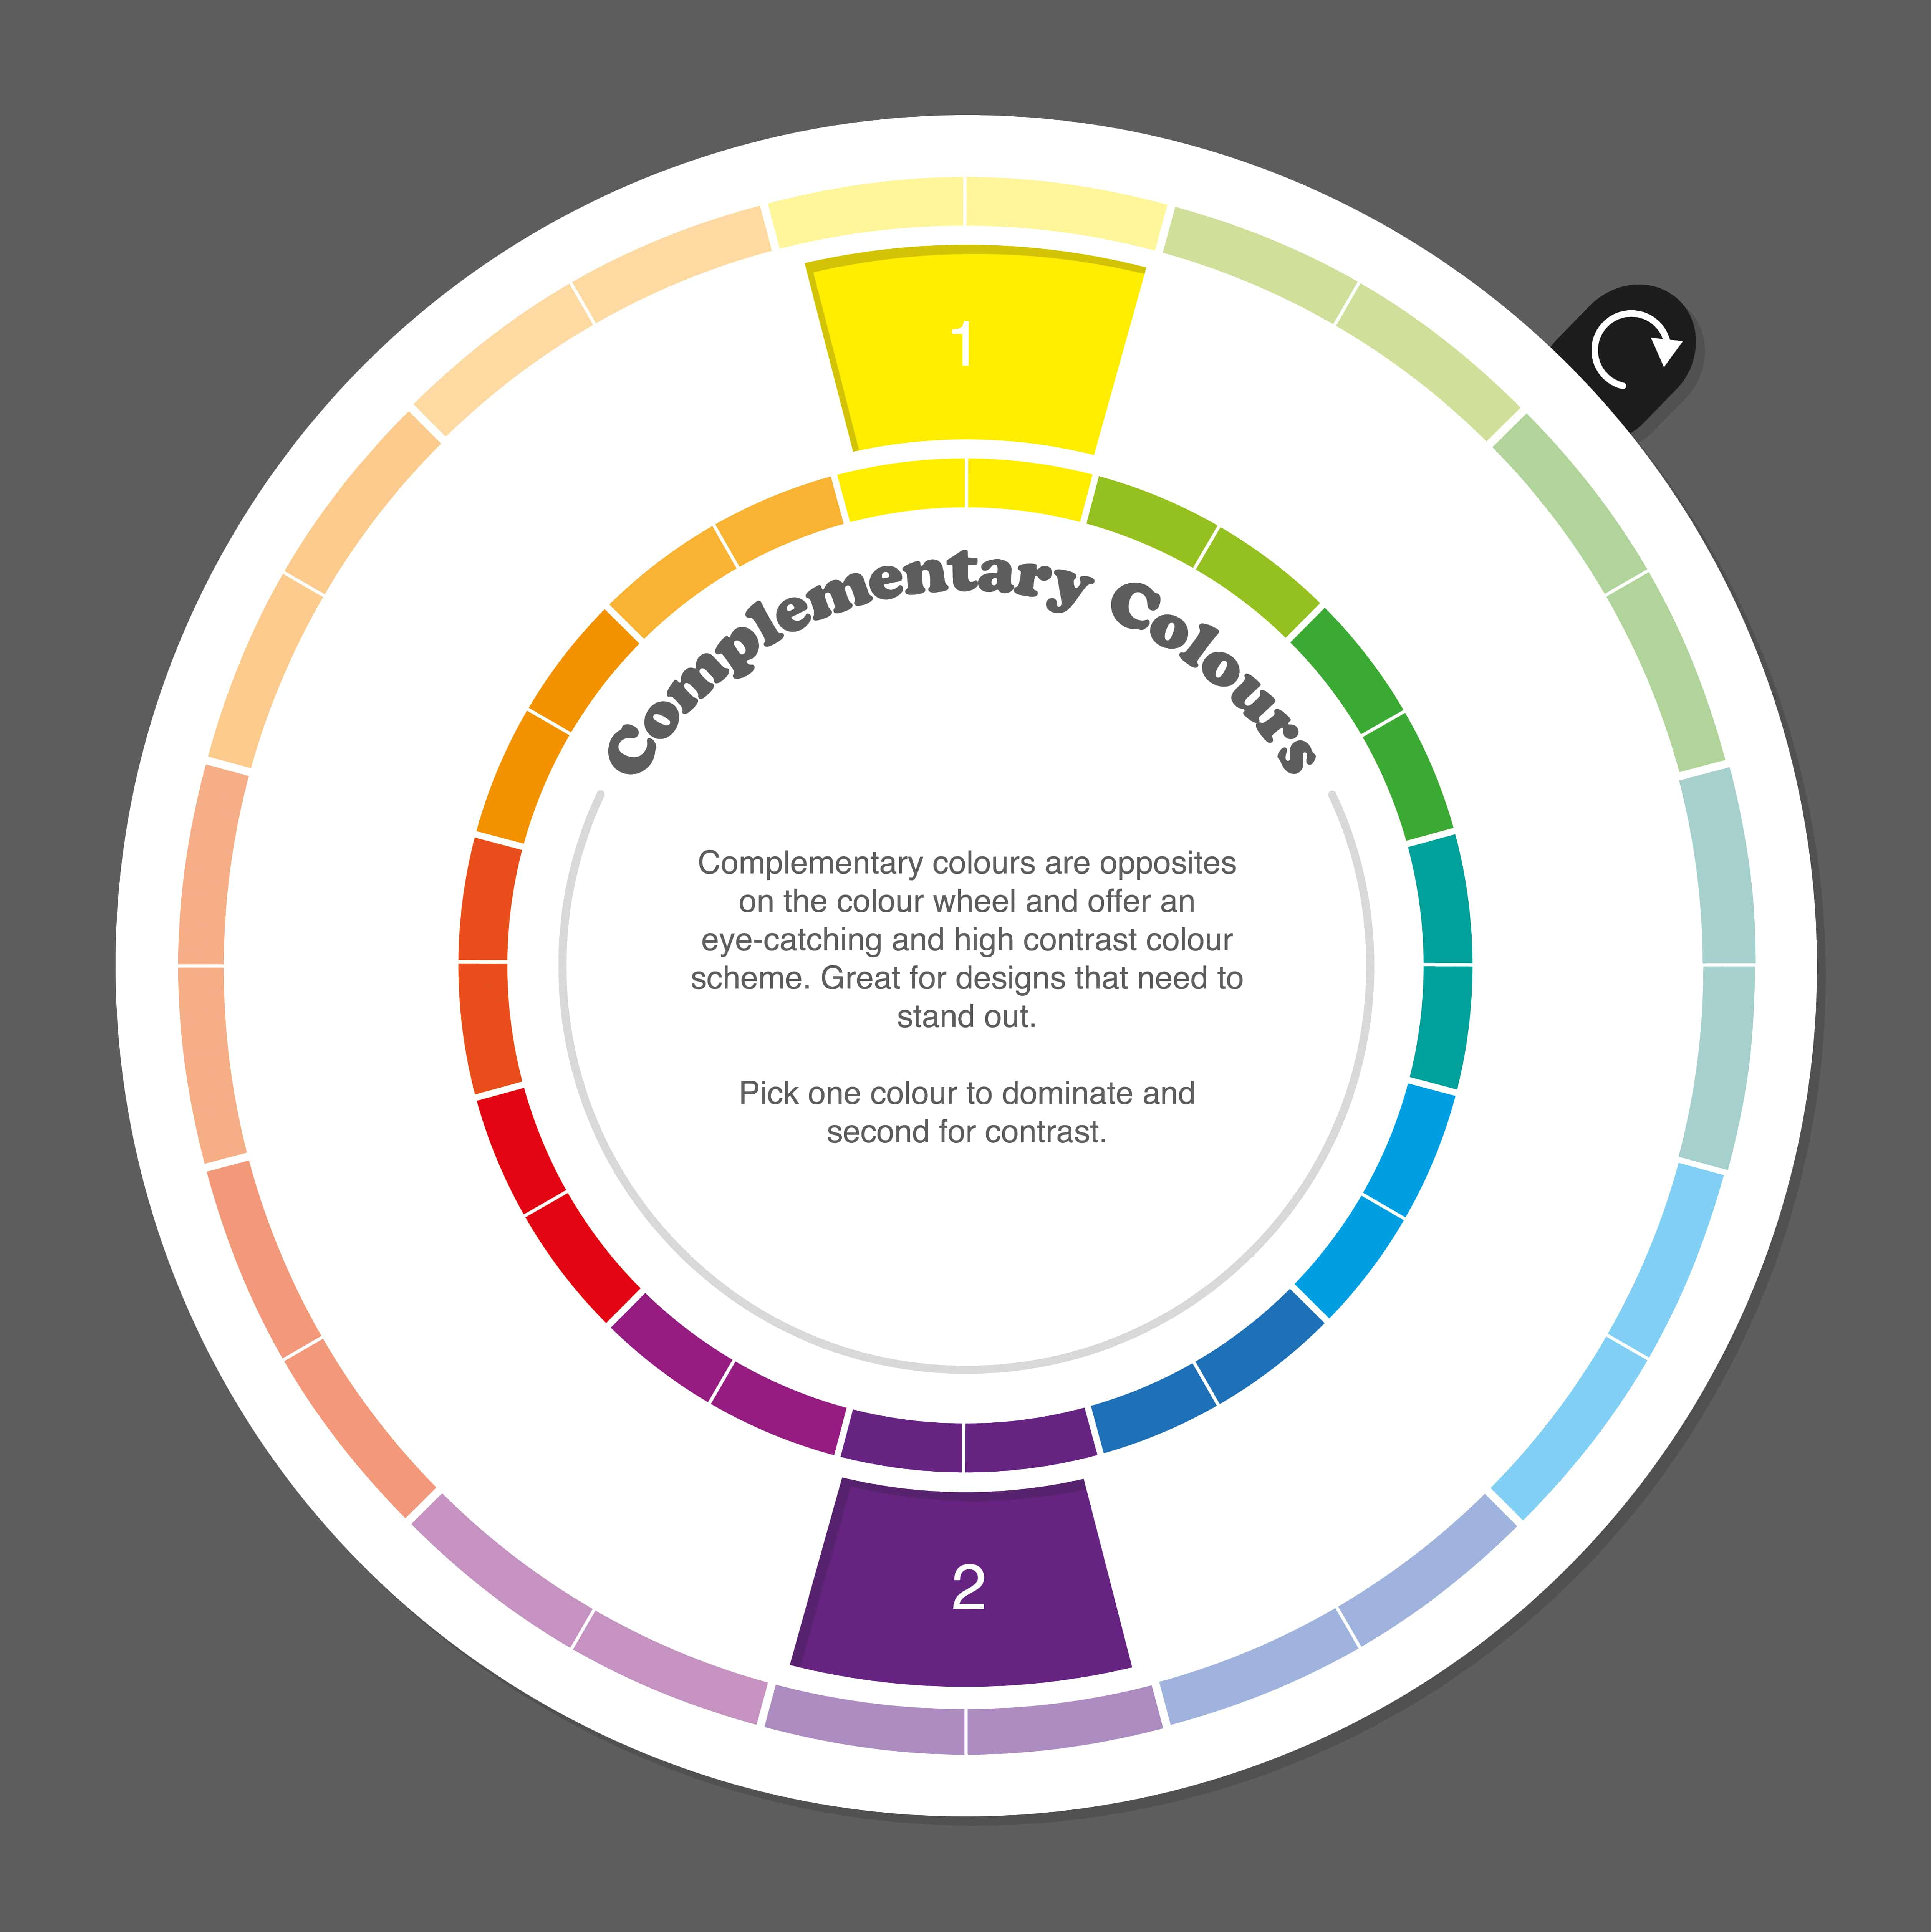 complementary color scheme shown on a color wheel